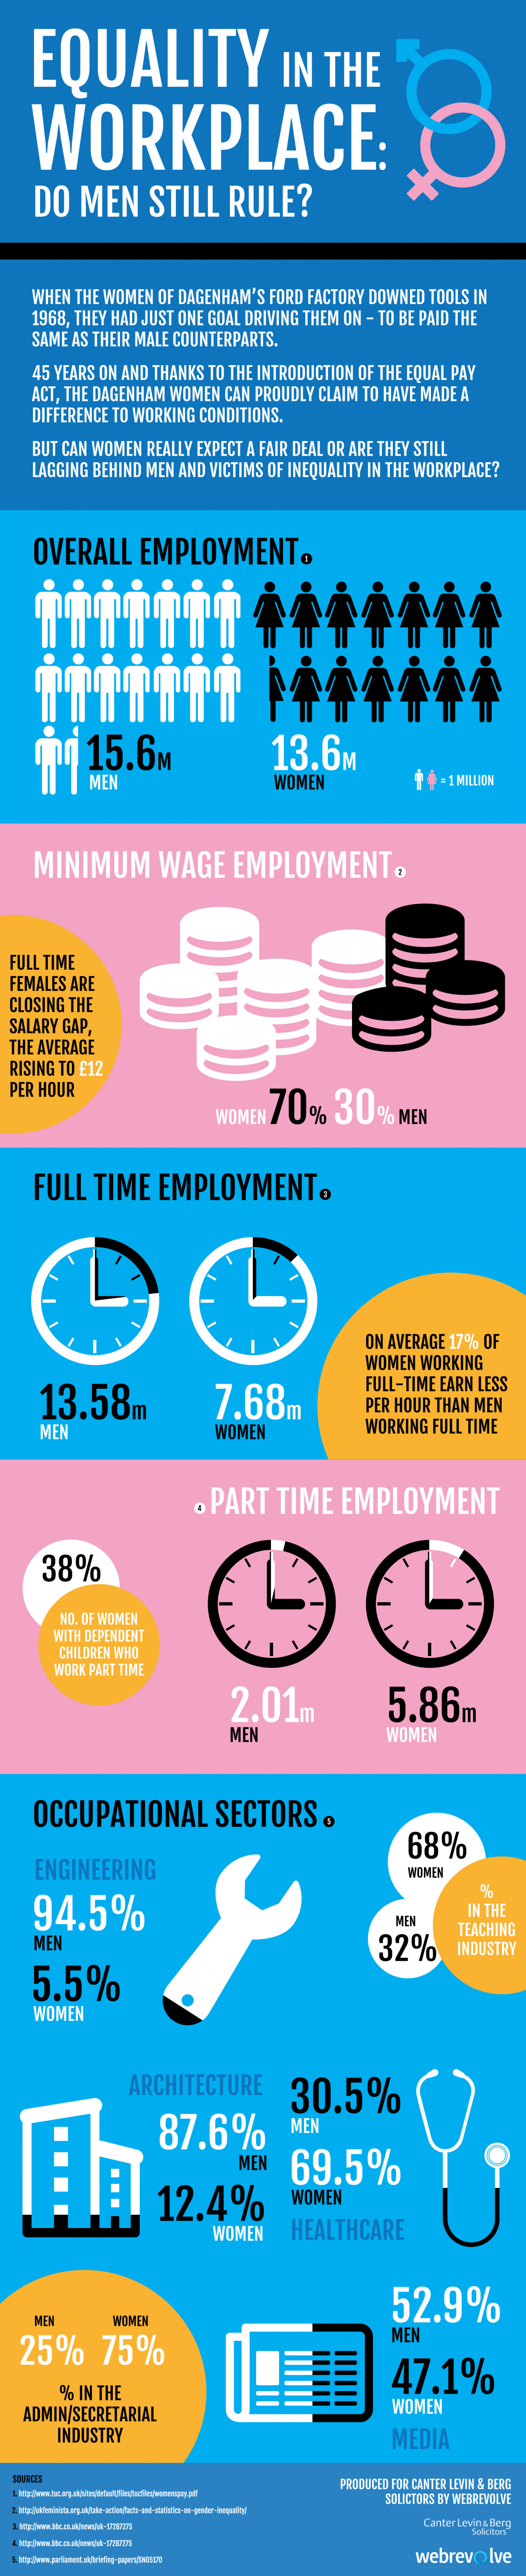 Equality In The Work Place: Do Men Still Rule?  Infographic